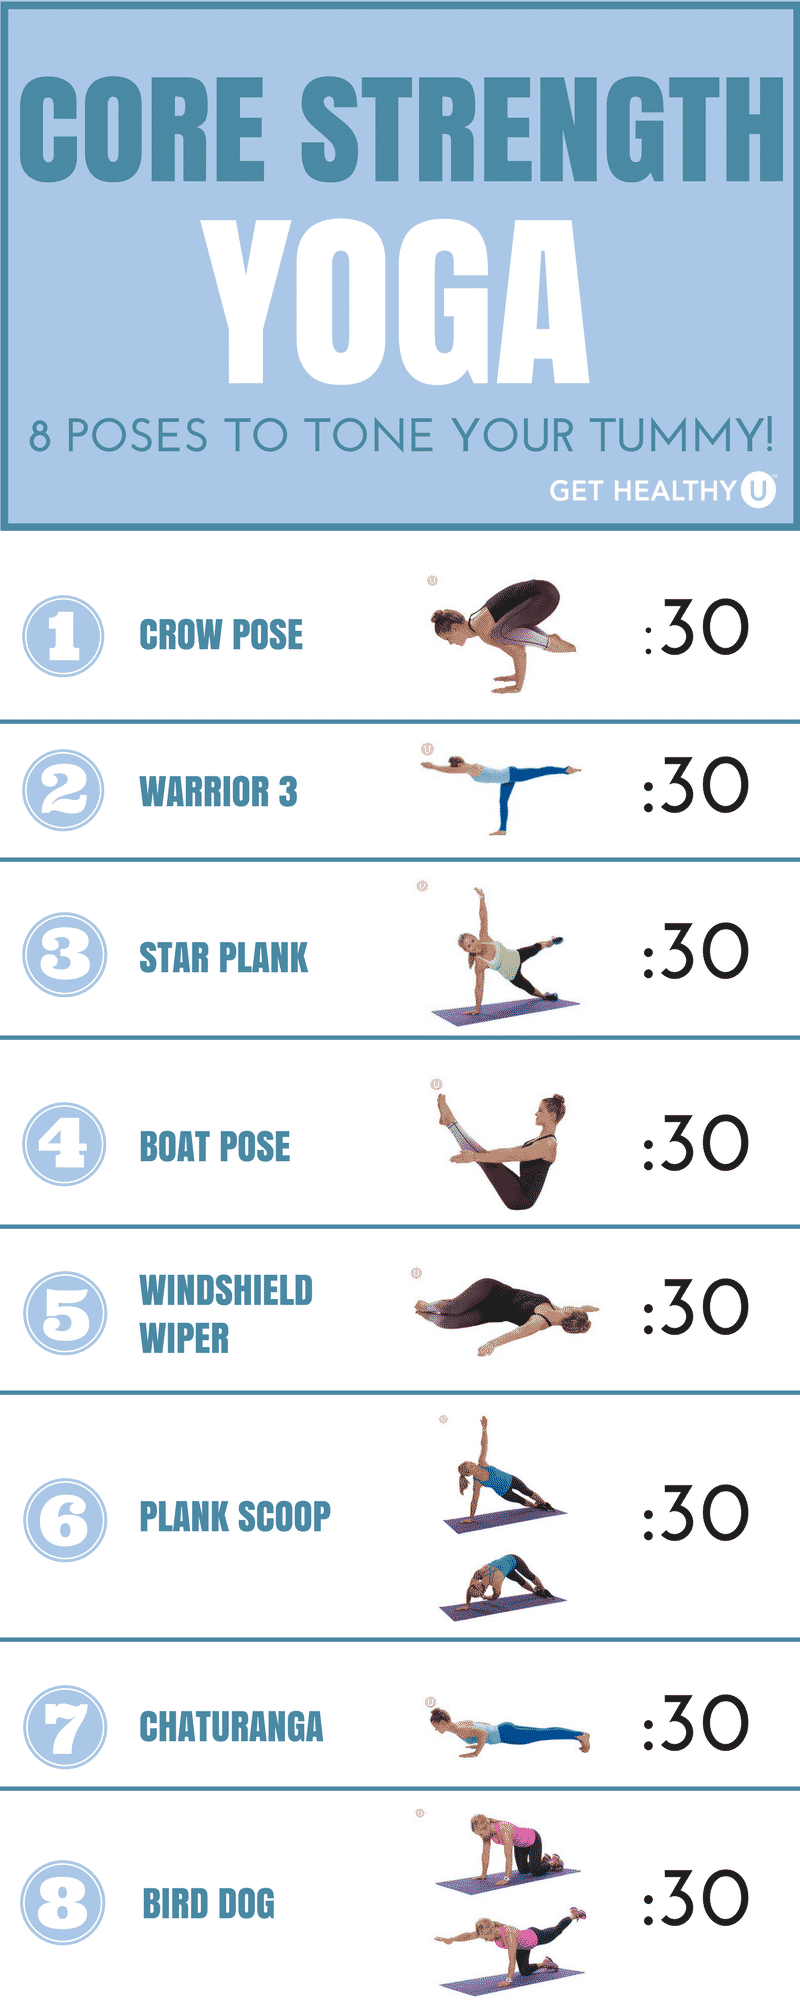 8 Challenging Yoga Poses For Core Strength